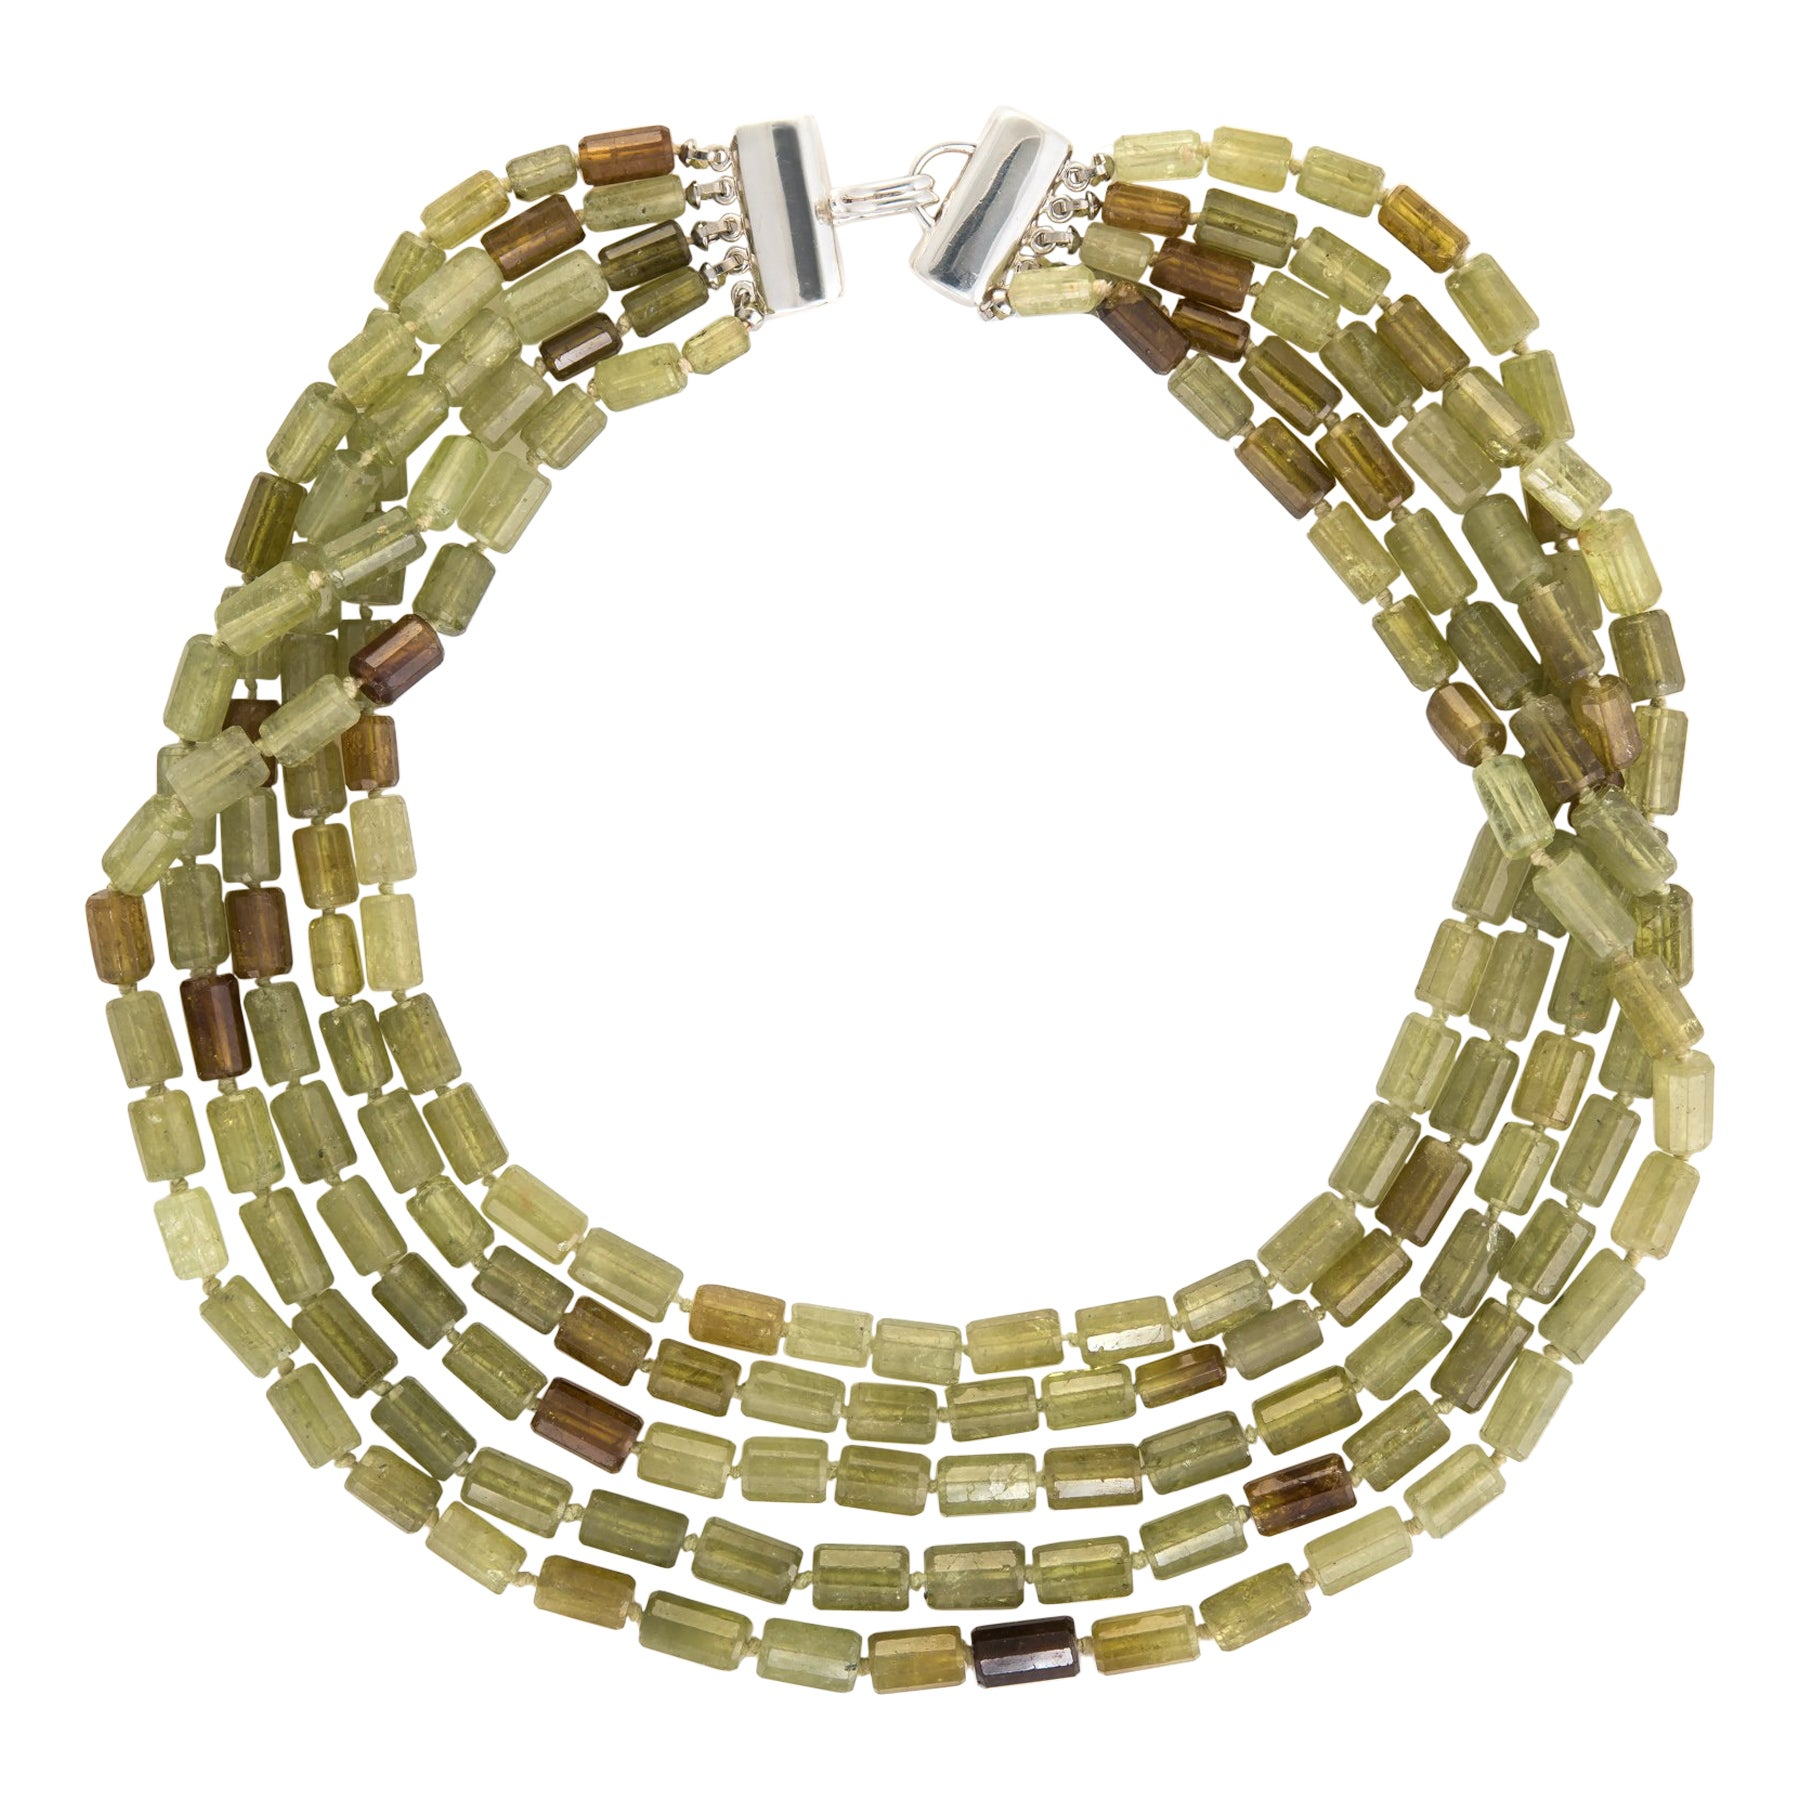 a3896f75c Vintage Tiffany and Co. Chrysoberyl Necklace Torsade Multi 5-Strand Estate  Jewelry at 1stdibs